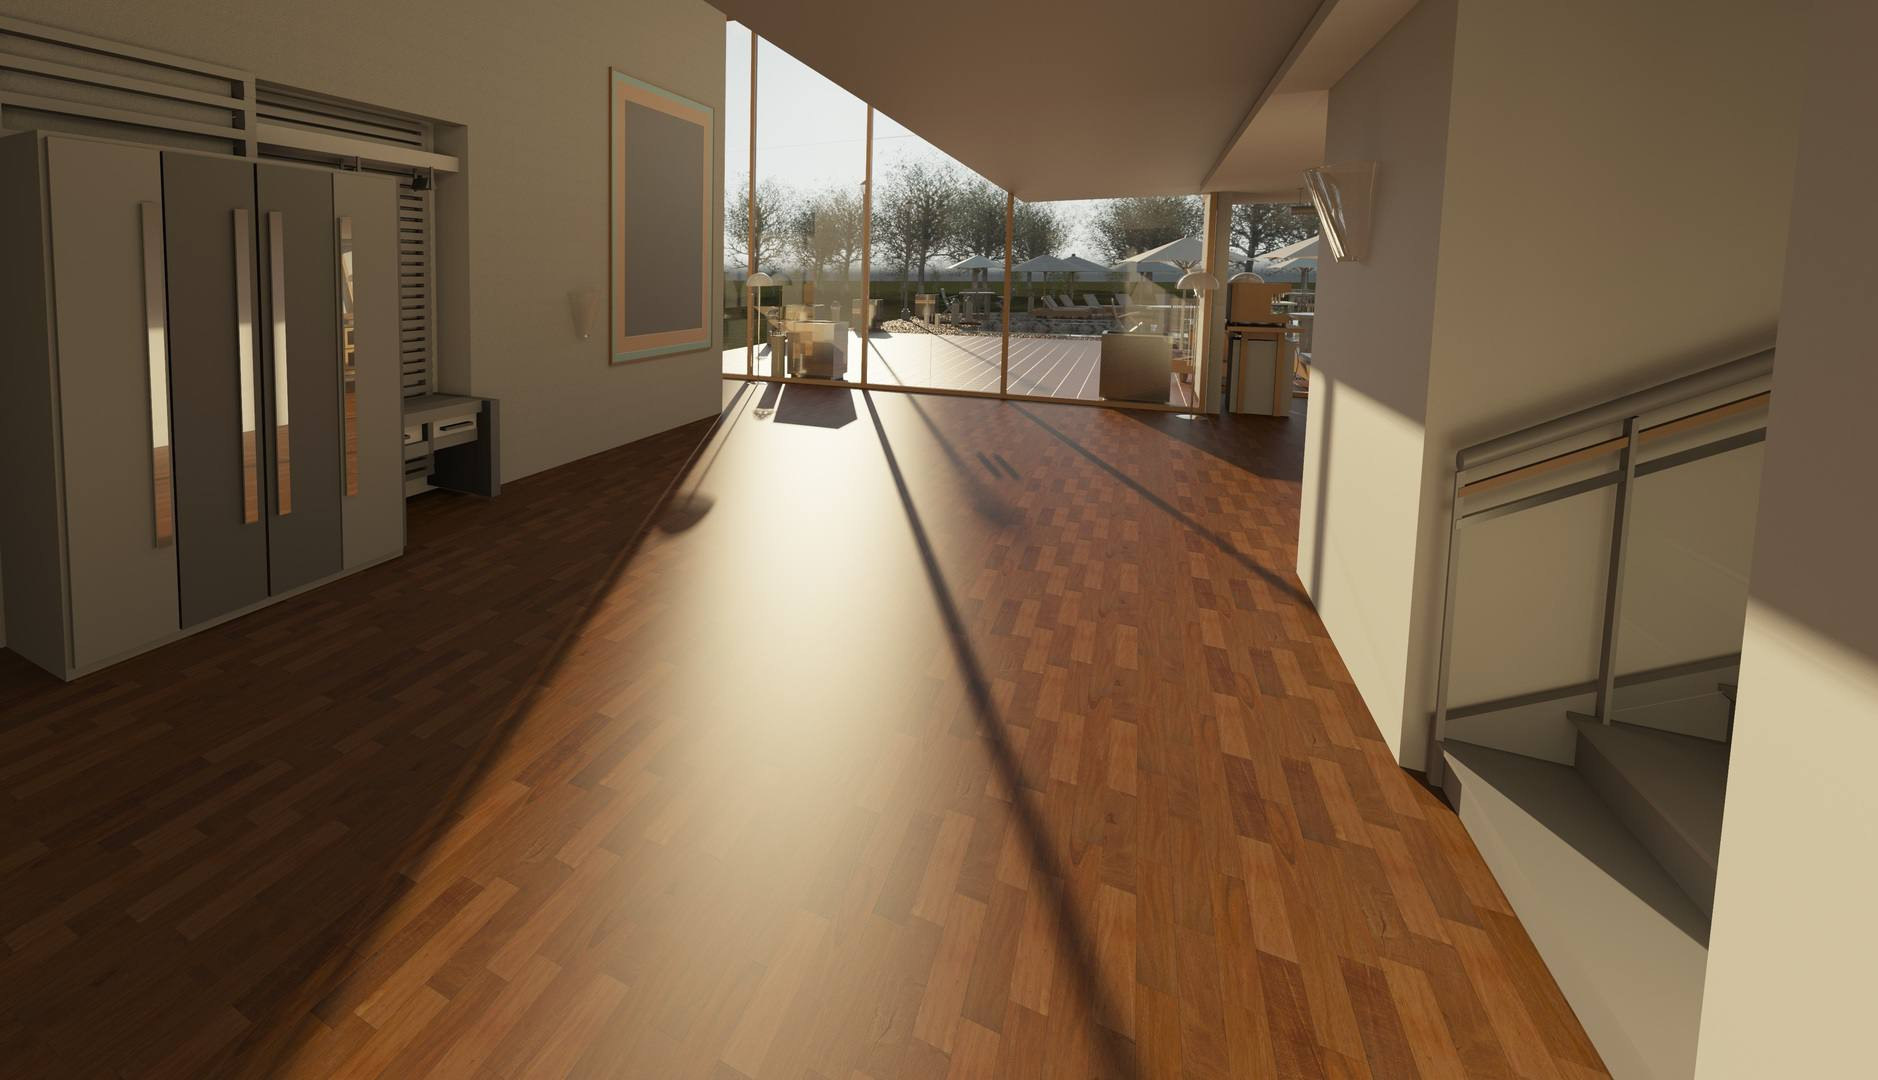 2 1 4 hardwood flooring unfinished of common flooring types currently used in renovation and building regarding architecture wood house floor interior window 917178 pxhere com 5ba27a2cc9e77c00503b27b9